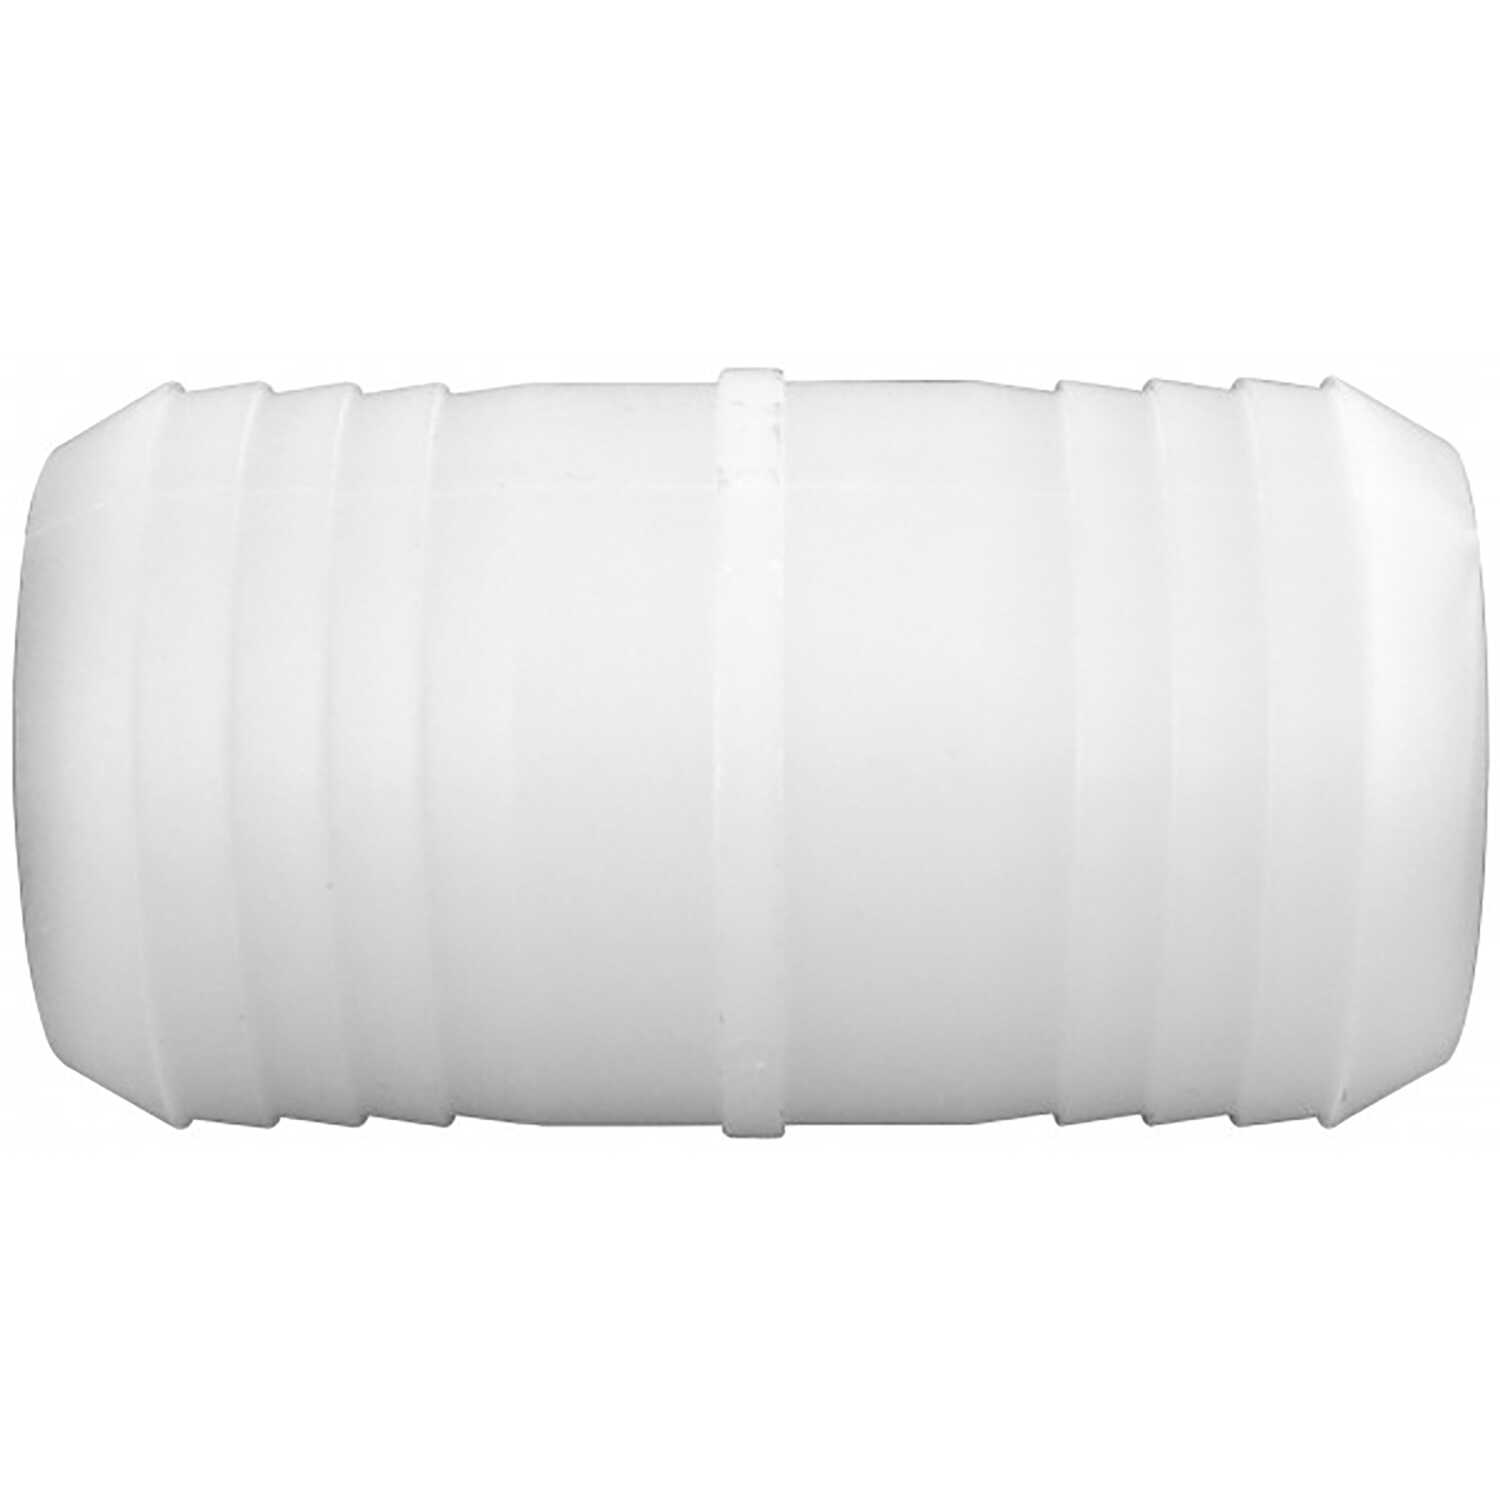 Green Leaf  1/2 in. Barb   x 1/4 in. Dia. Barb  Nylon  Hose Adapter